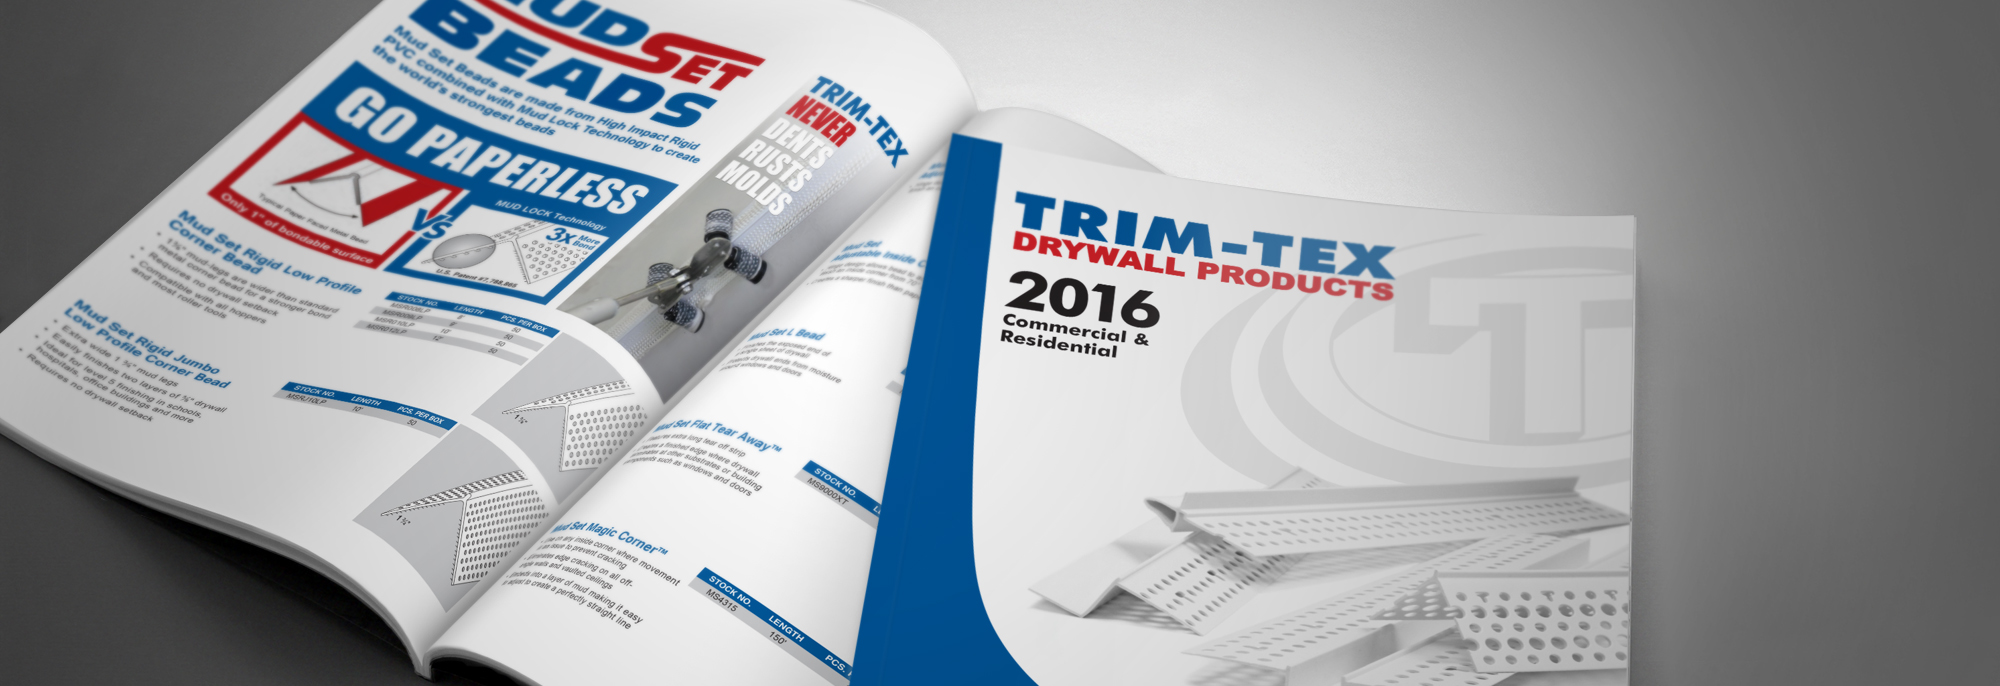 2016 Trim-Tex Catalog Banner.jpg